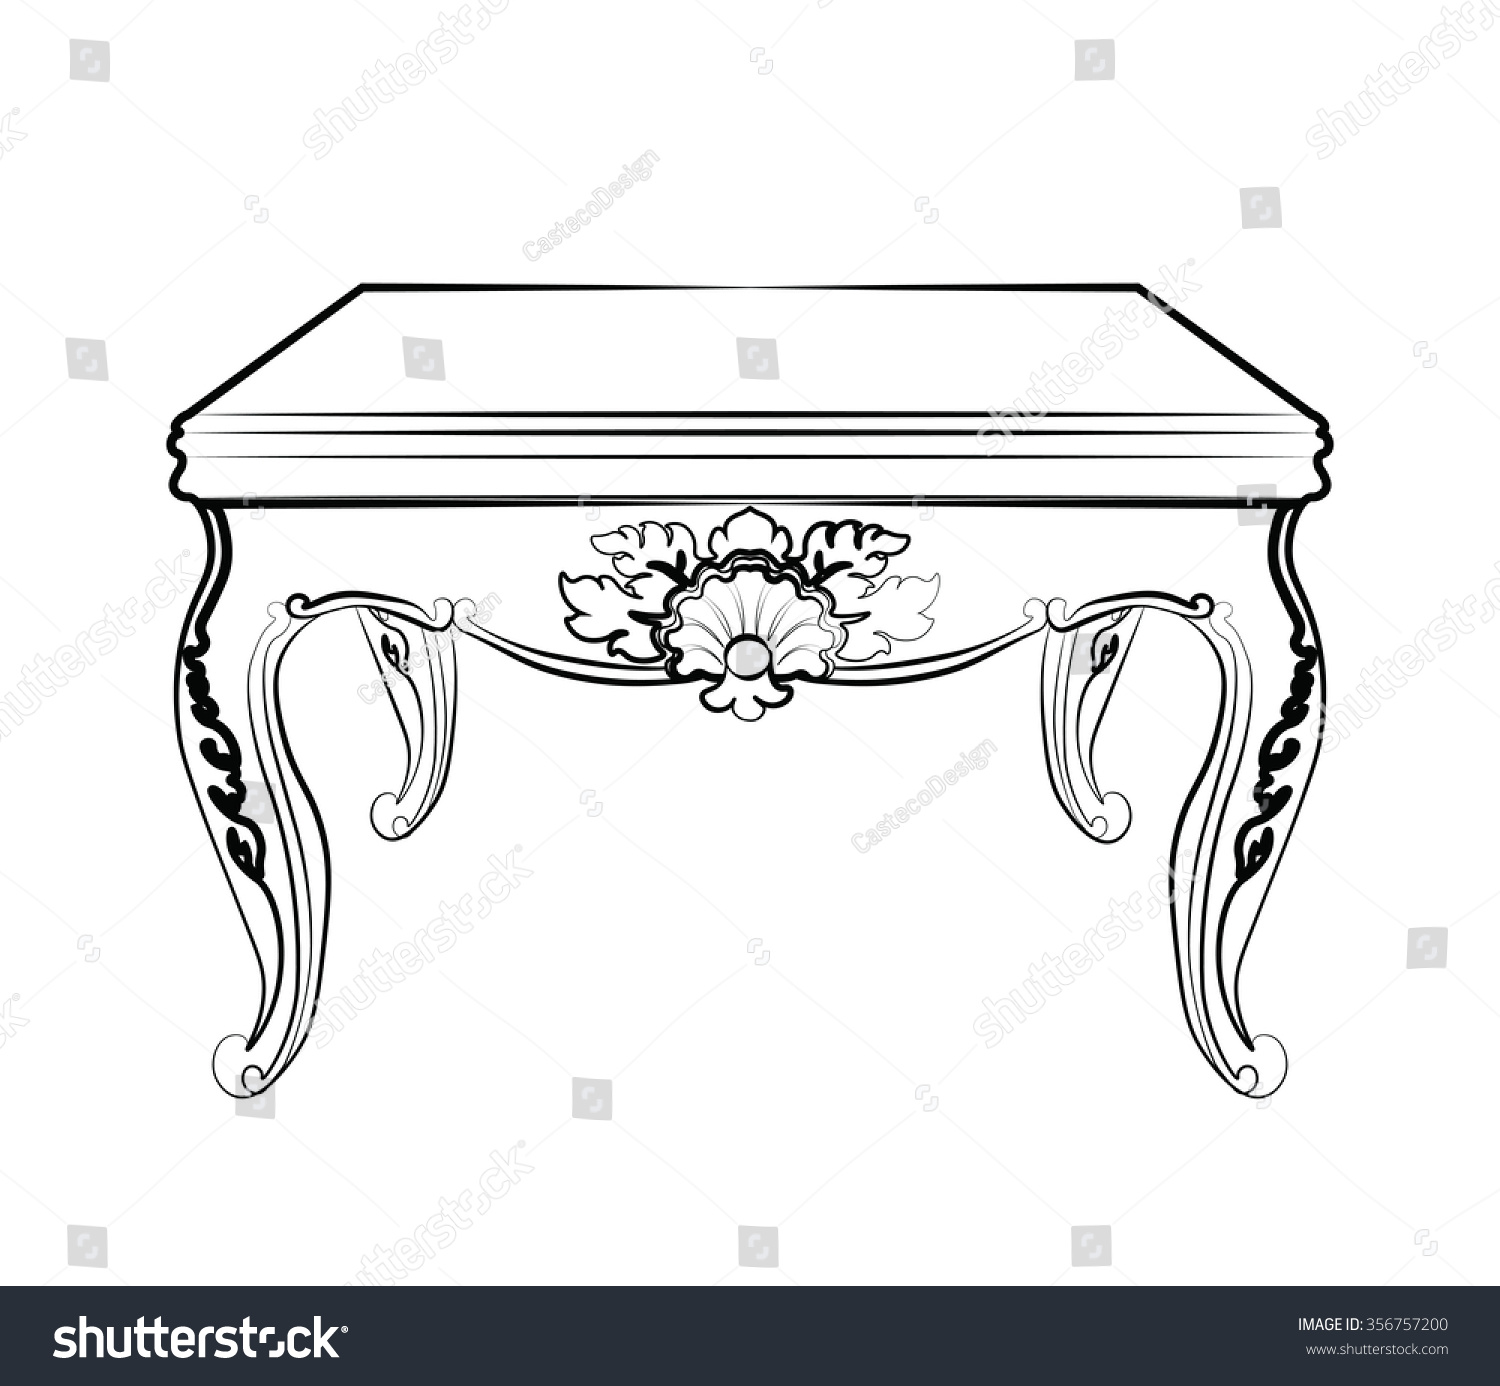 Rococo furniture sketch - Imperial Royal Table With Luxurious Damask Rococo Ornaments Vector Sketch